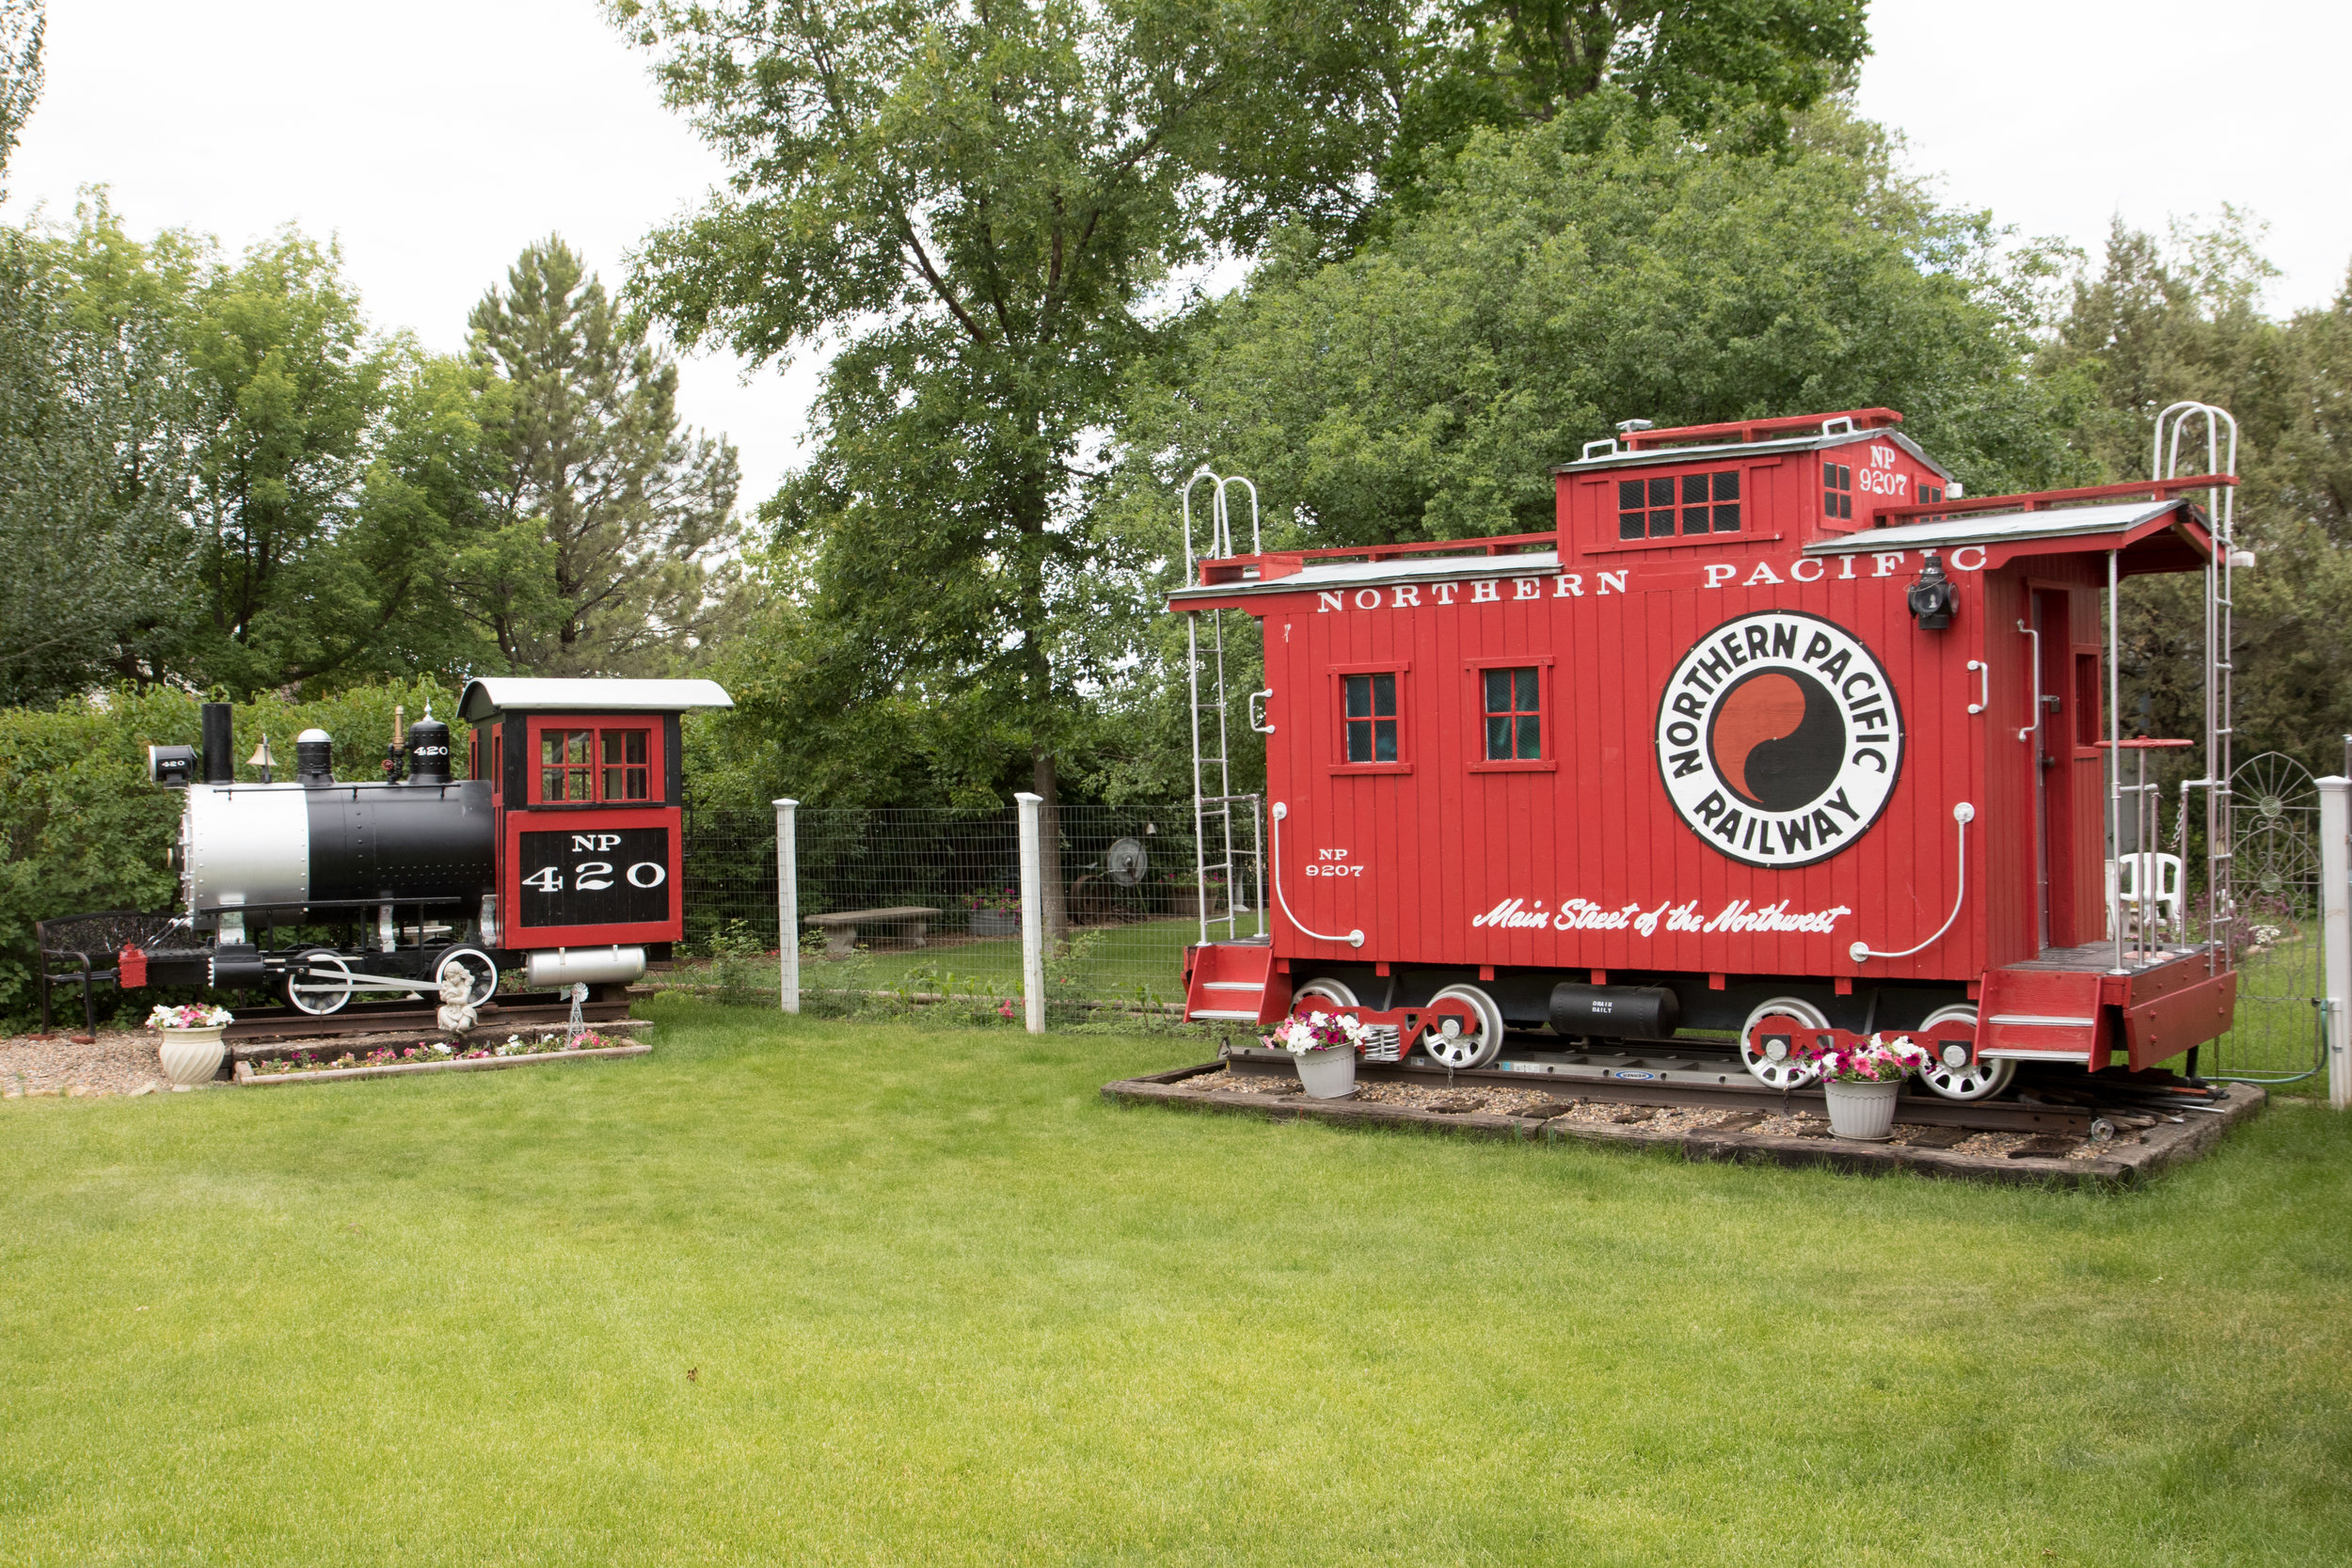 In Hall's front yard, a local landmark, sit two custom built train cars.